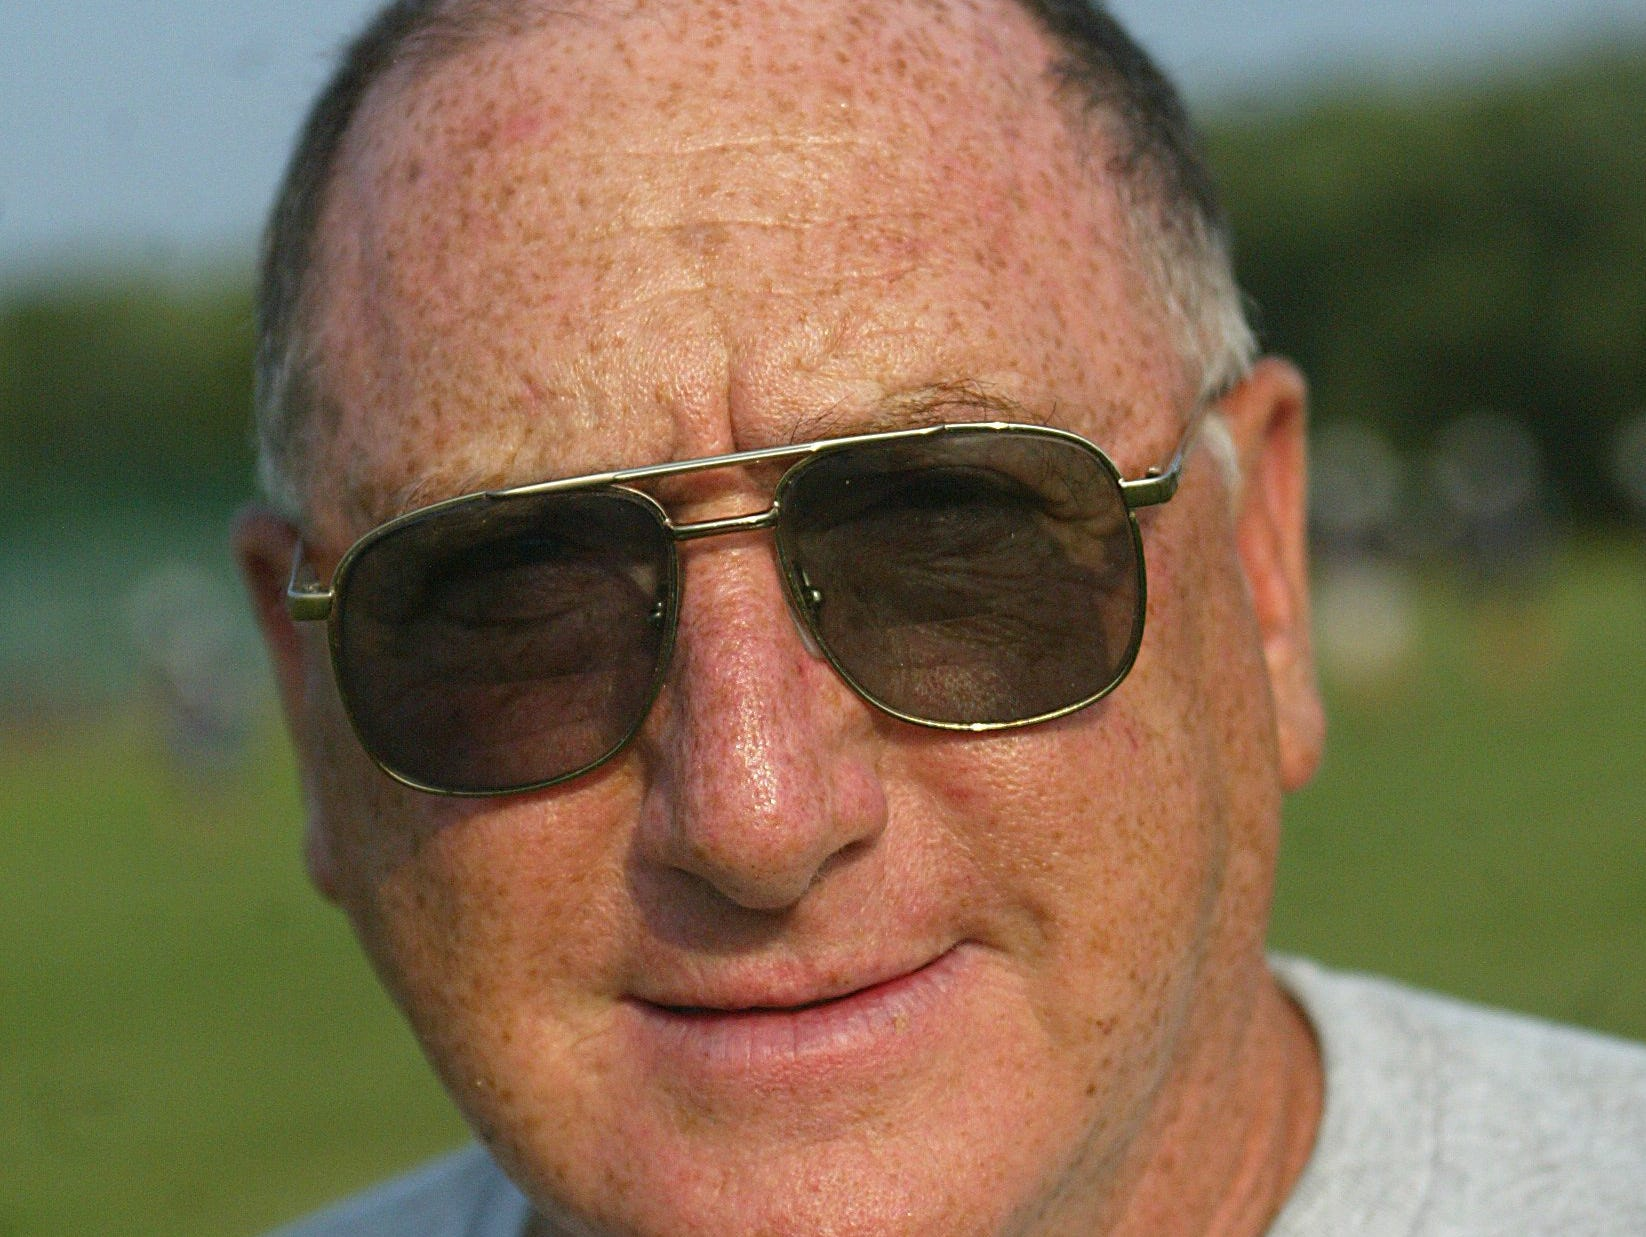 Long-time Lacey head coach Lou Vircillo, shown in 2007, was a young assistant coach at Red Bank in 1975.